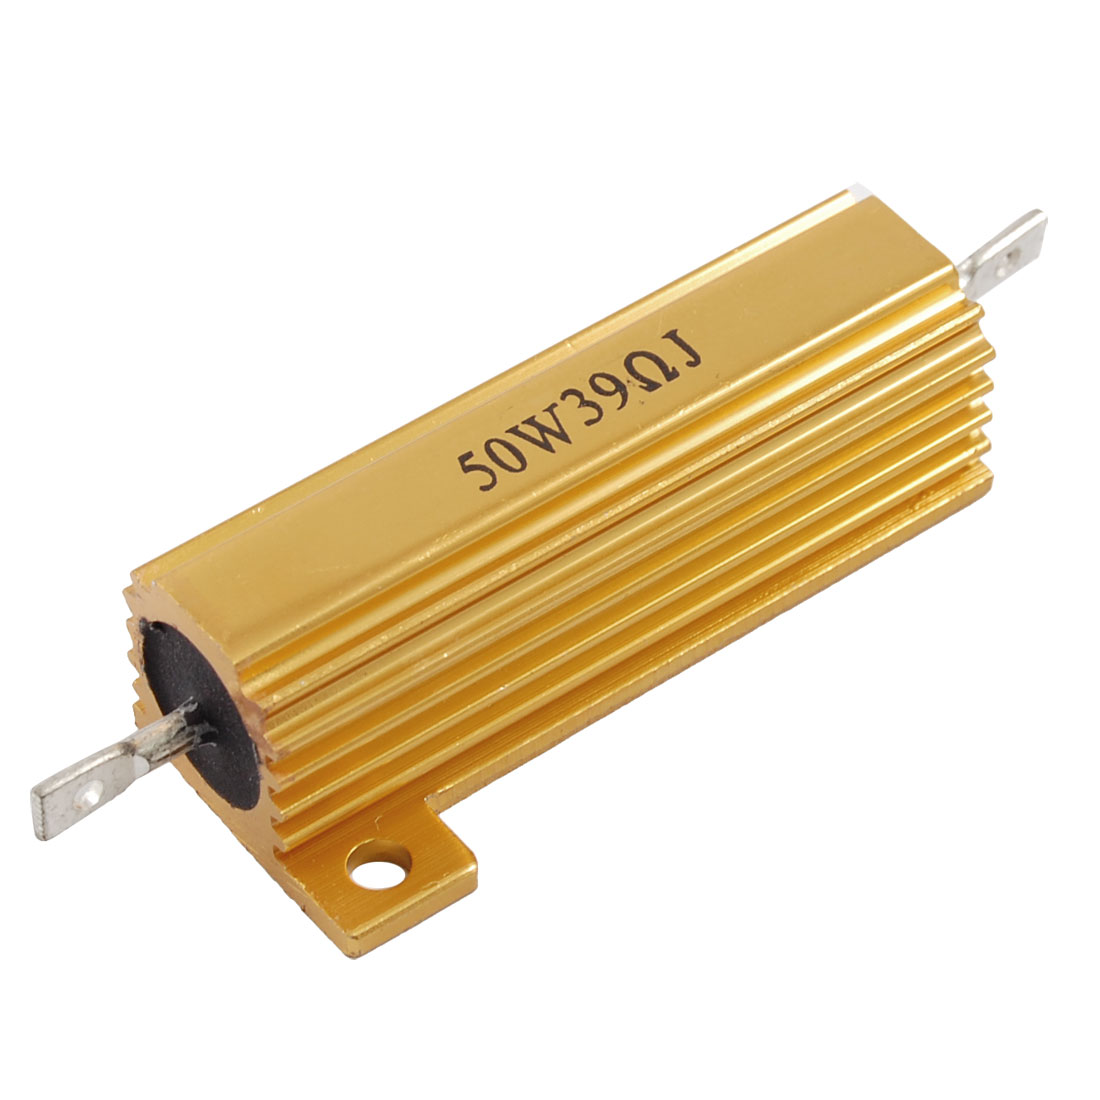 Chasis Mounted 50W 39 Ohm 5% Aluminum Case Wirewound Resistor